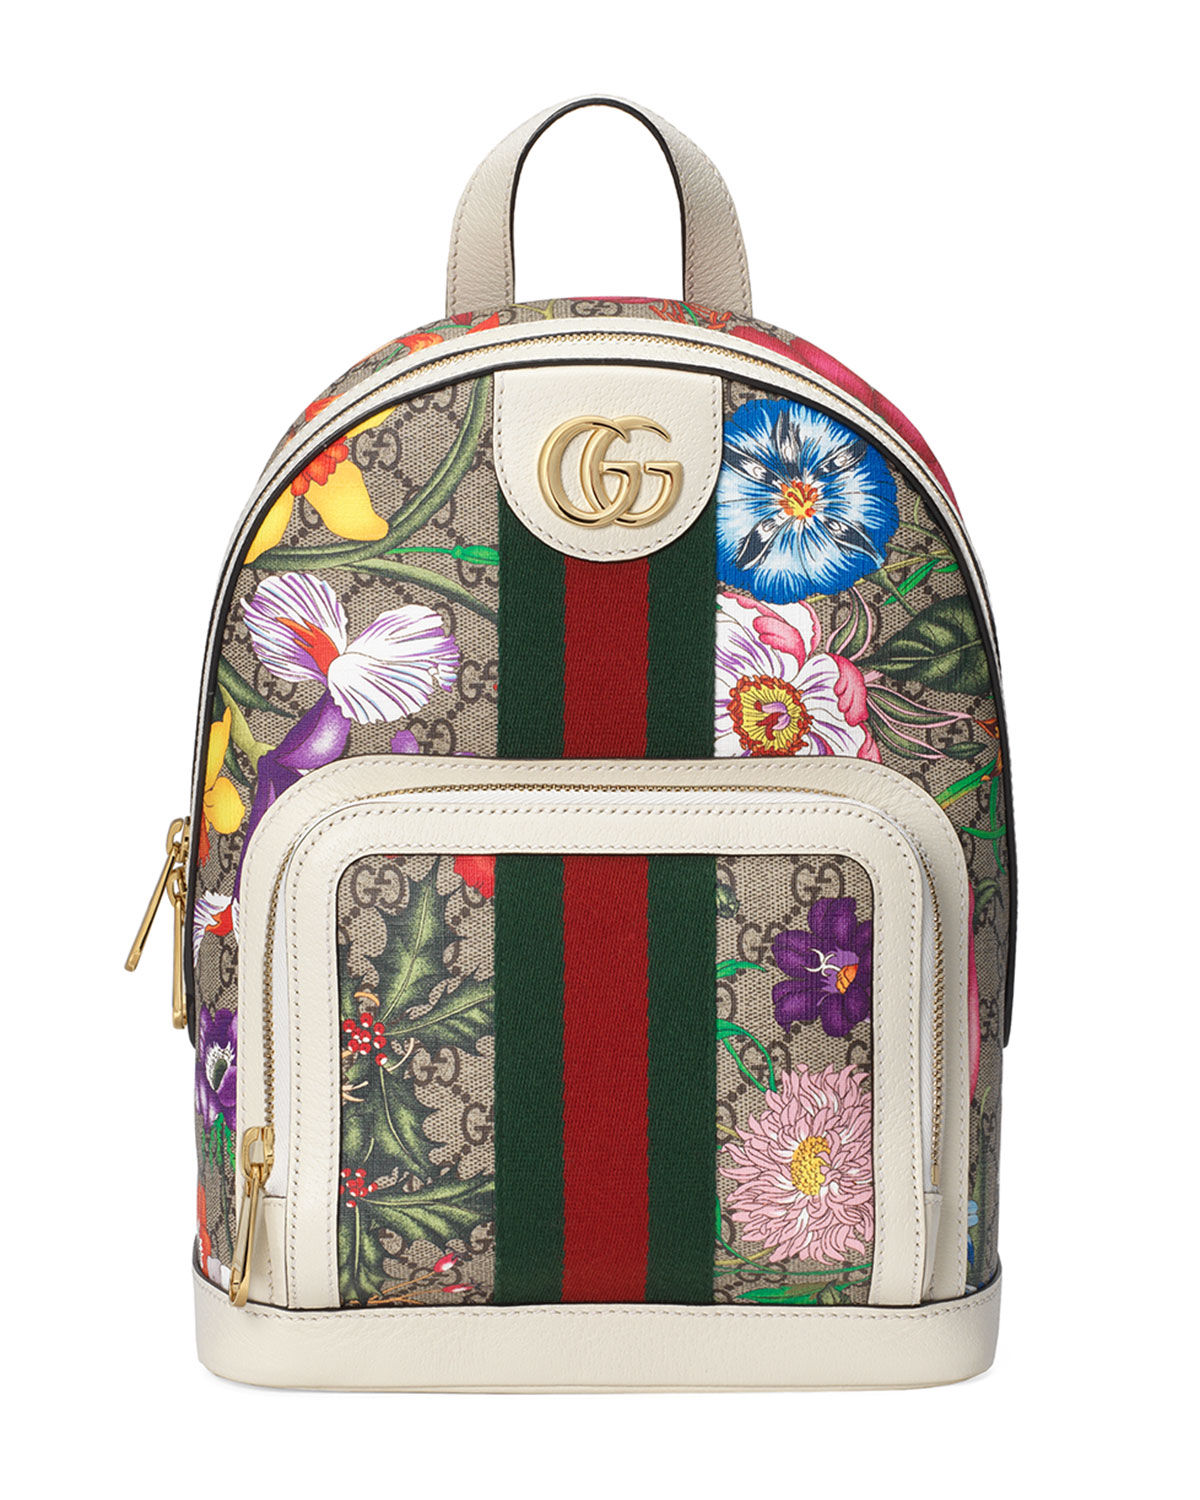 Gucci Backpacks OPHIDIA SMALL GG SUPREME FLORA BACKPACK